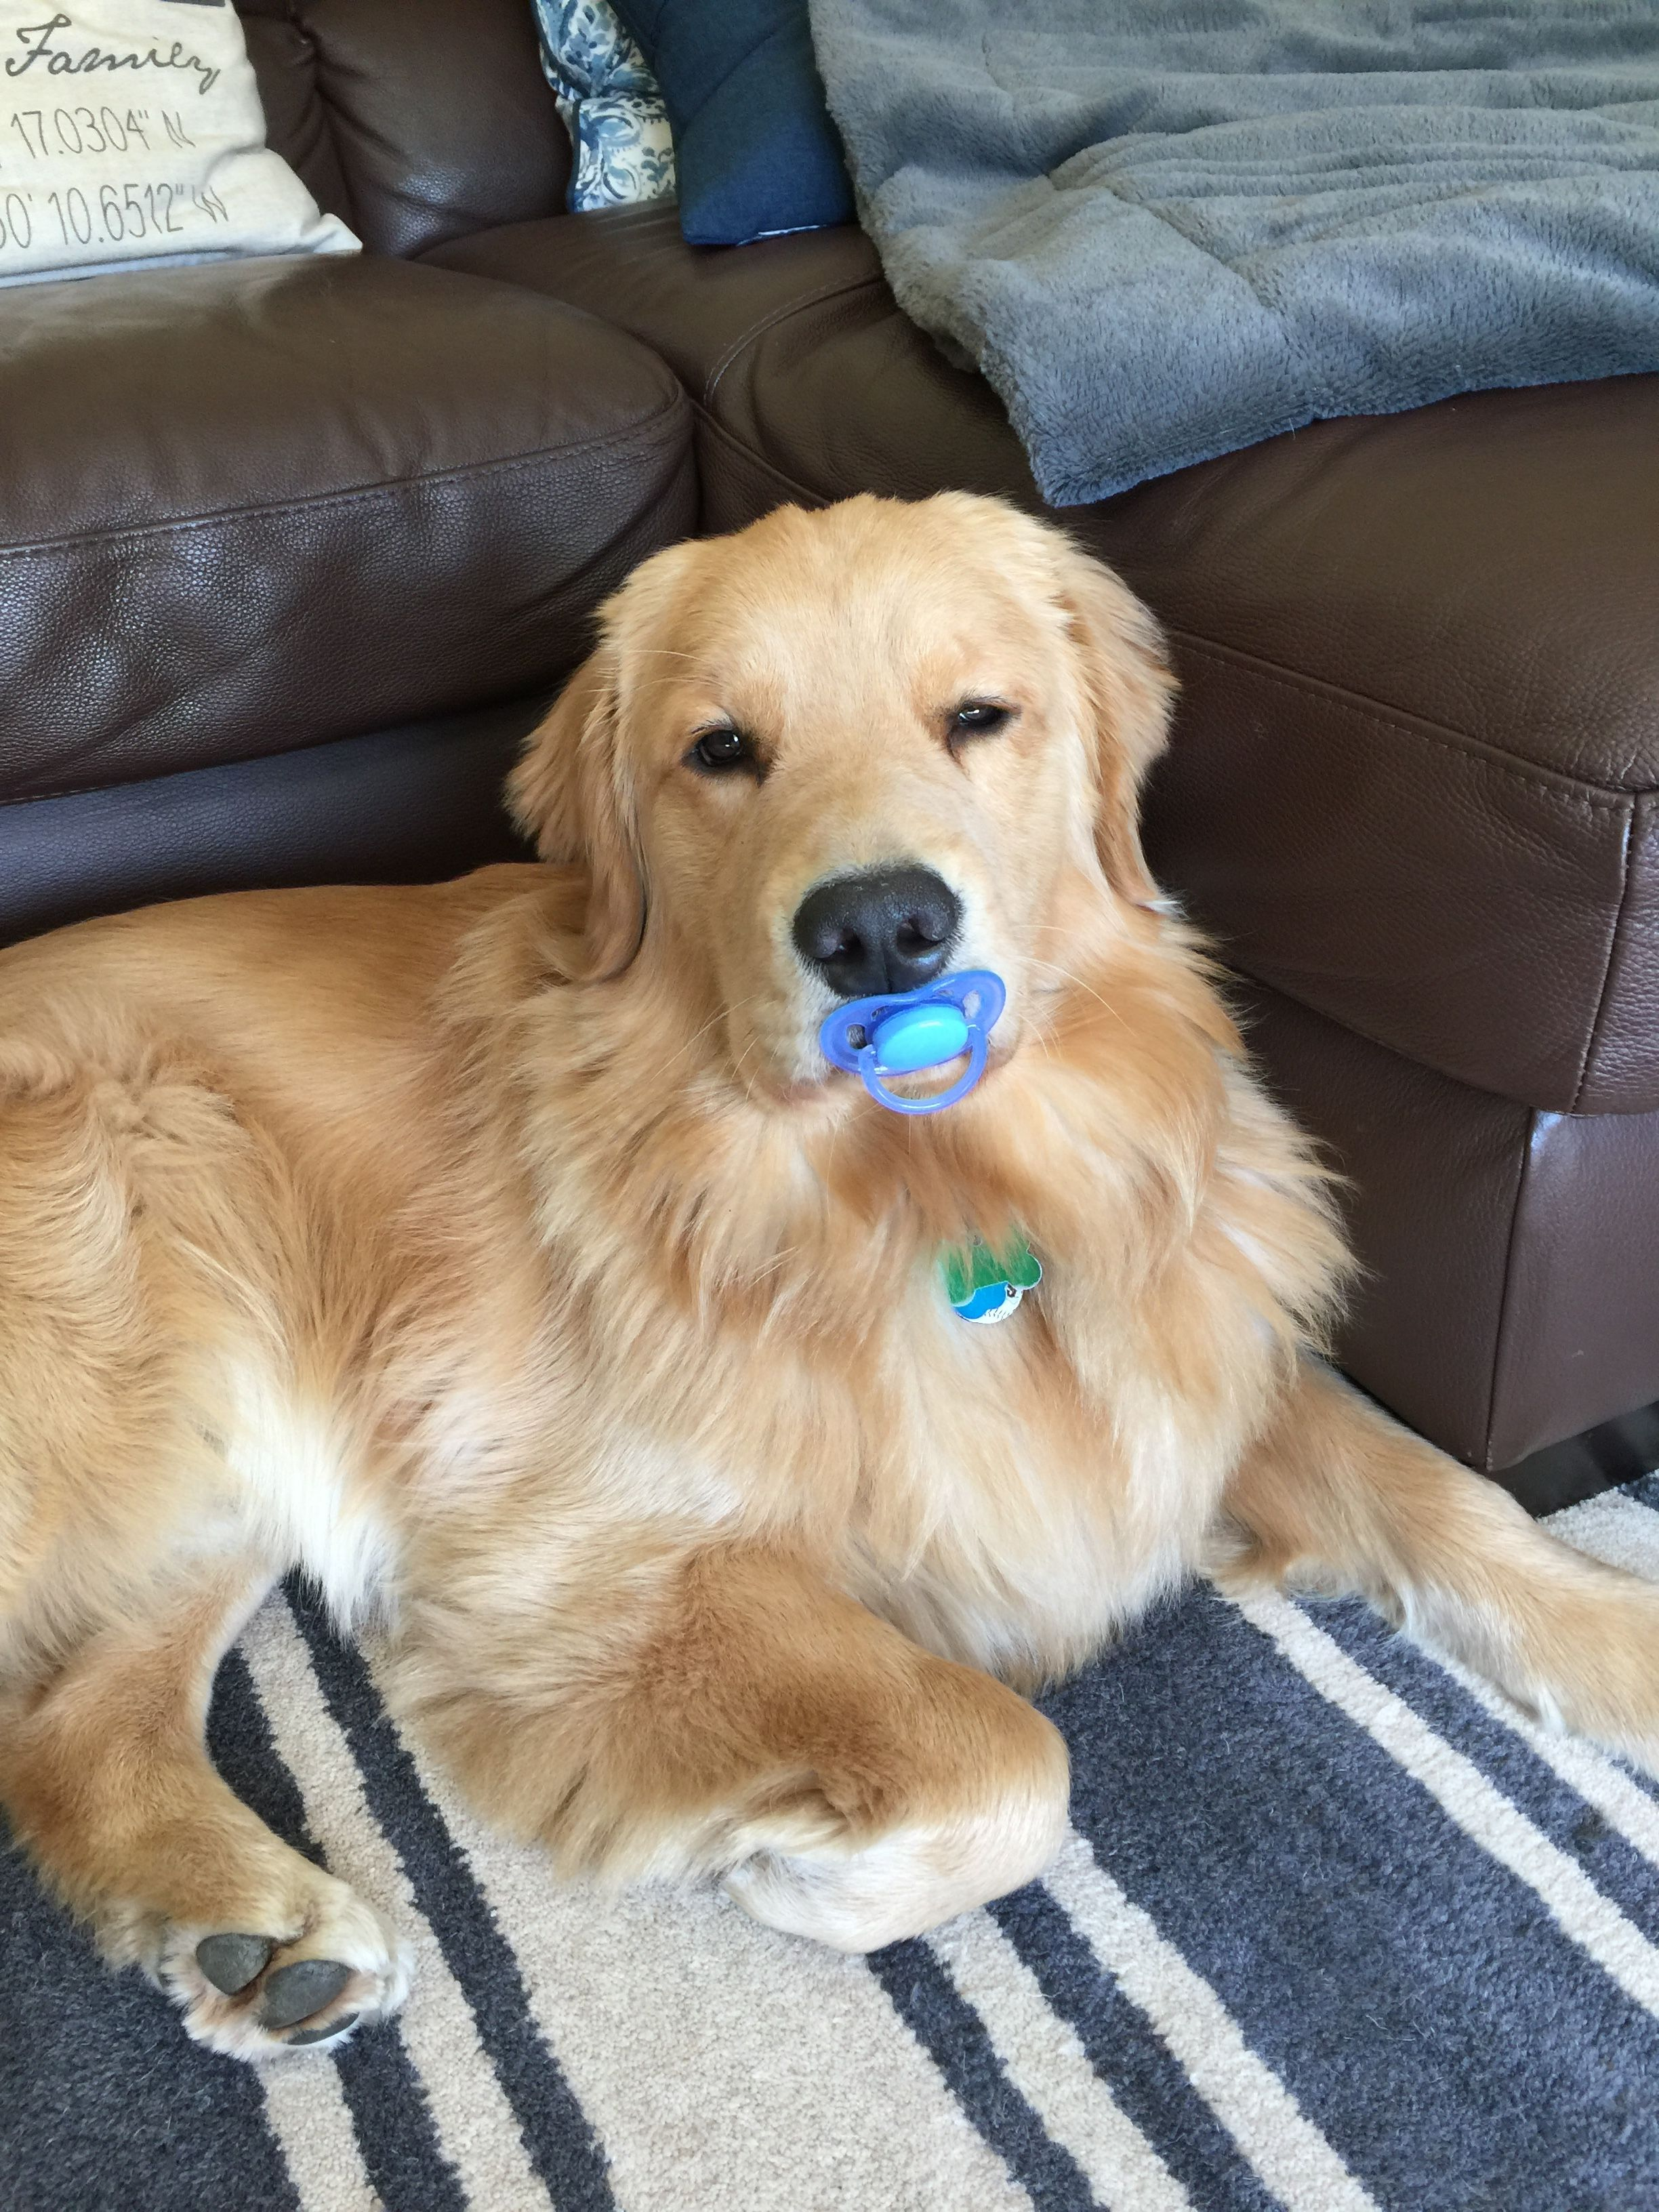 Everypawdy Needs A Binky Now And Then Lol Golden Retriever